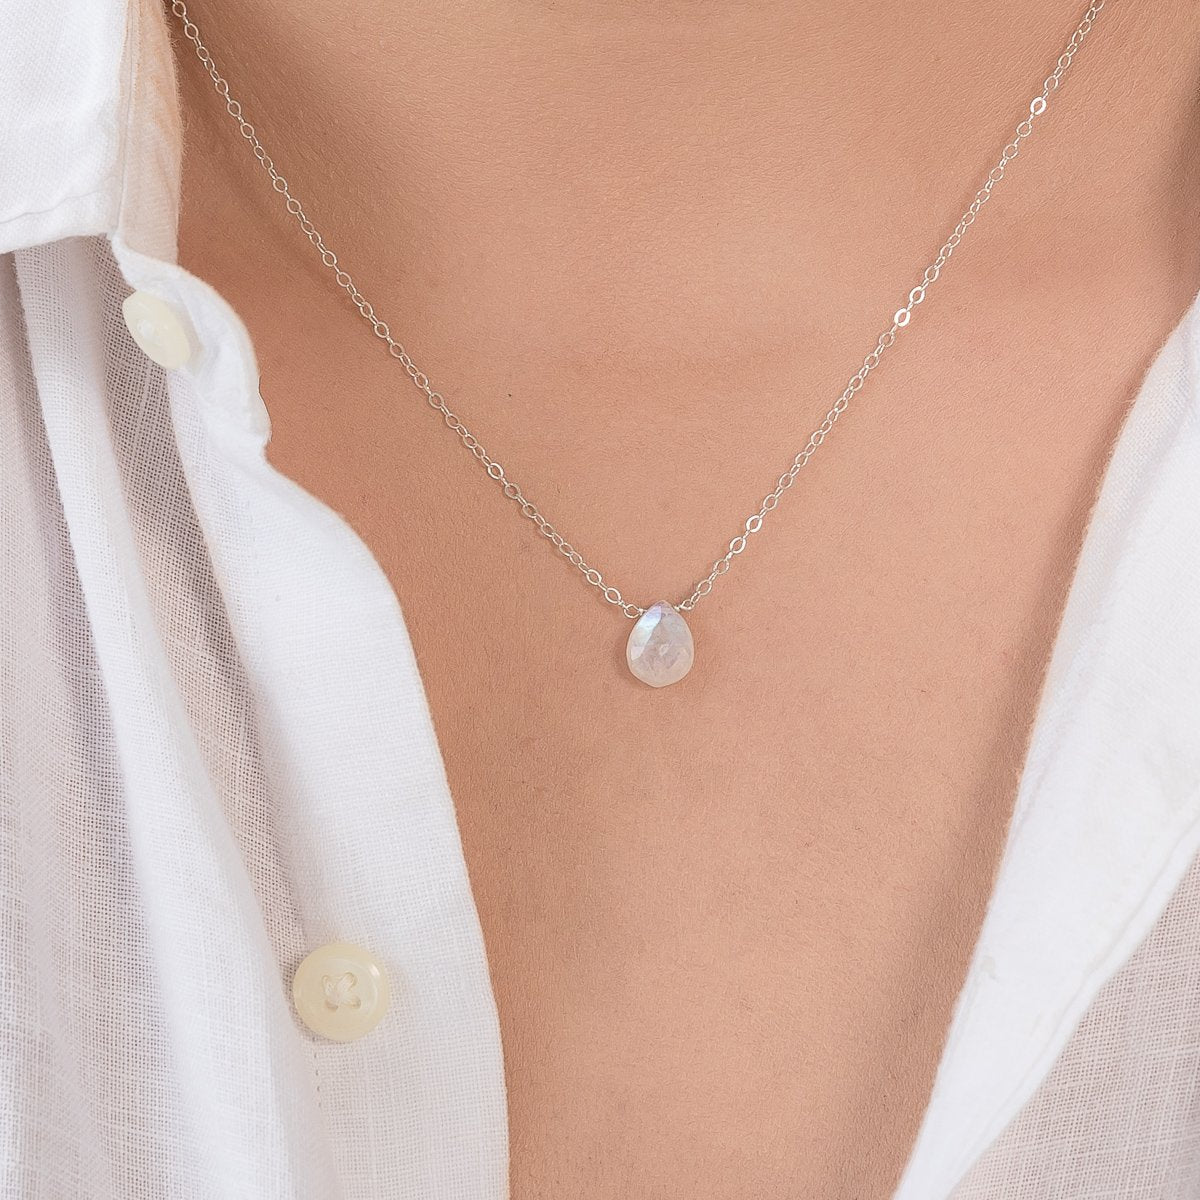 June Rainbow Moonstone Teardrop Necklace Liz.Beth Jewelry Co.